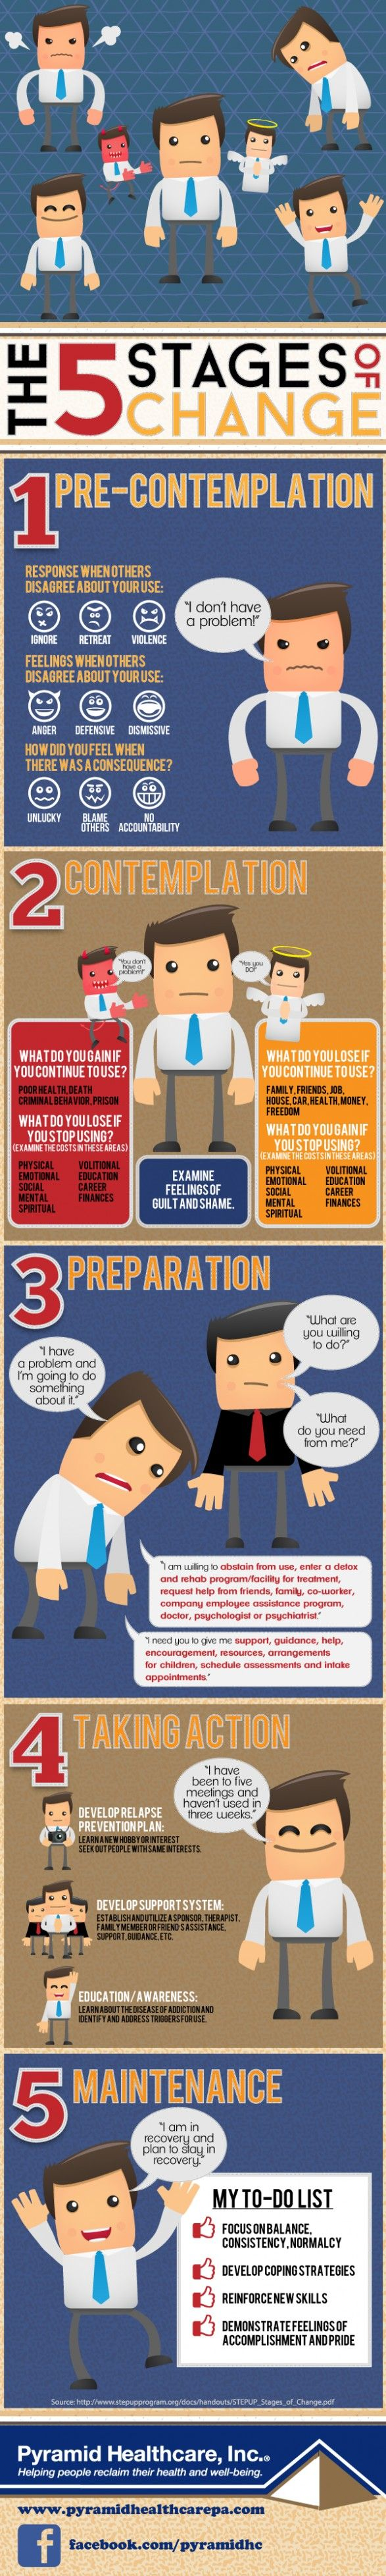 Drug and alcohol addiction can take control of a person's life in many, even unconscious ways. While everyone wants to be able to quit cold turkey, true change is a process that often carries people through 5 distinct stages. Learn how to recognize each stage that comes with drug addiction recovery through this infographic. For more information about effective long-term drug recovery, contact an Admissions Counselor at Pyramid Healthcare.